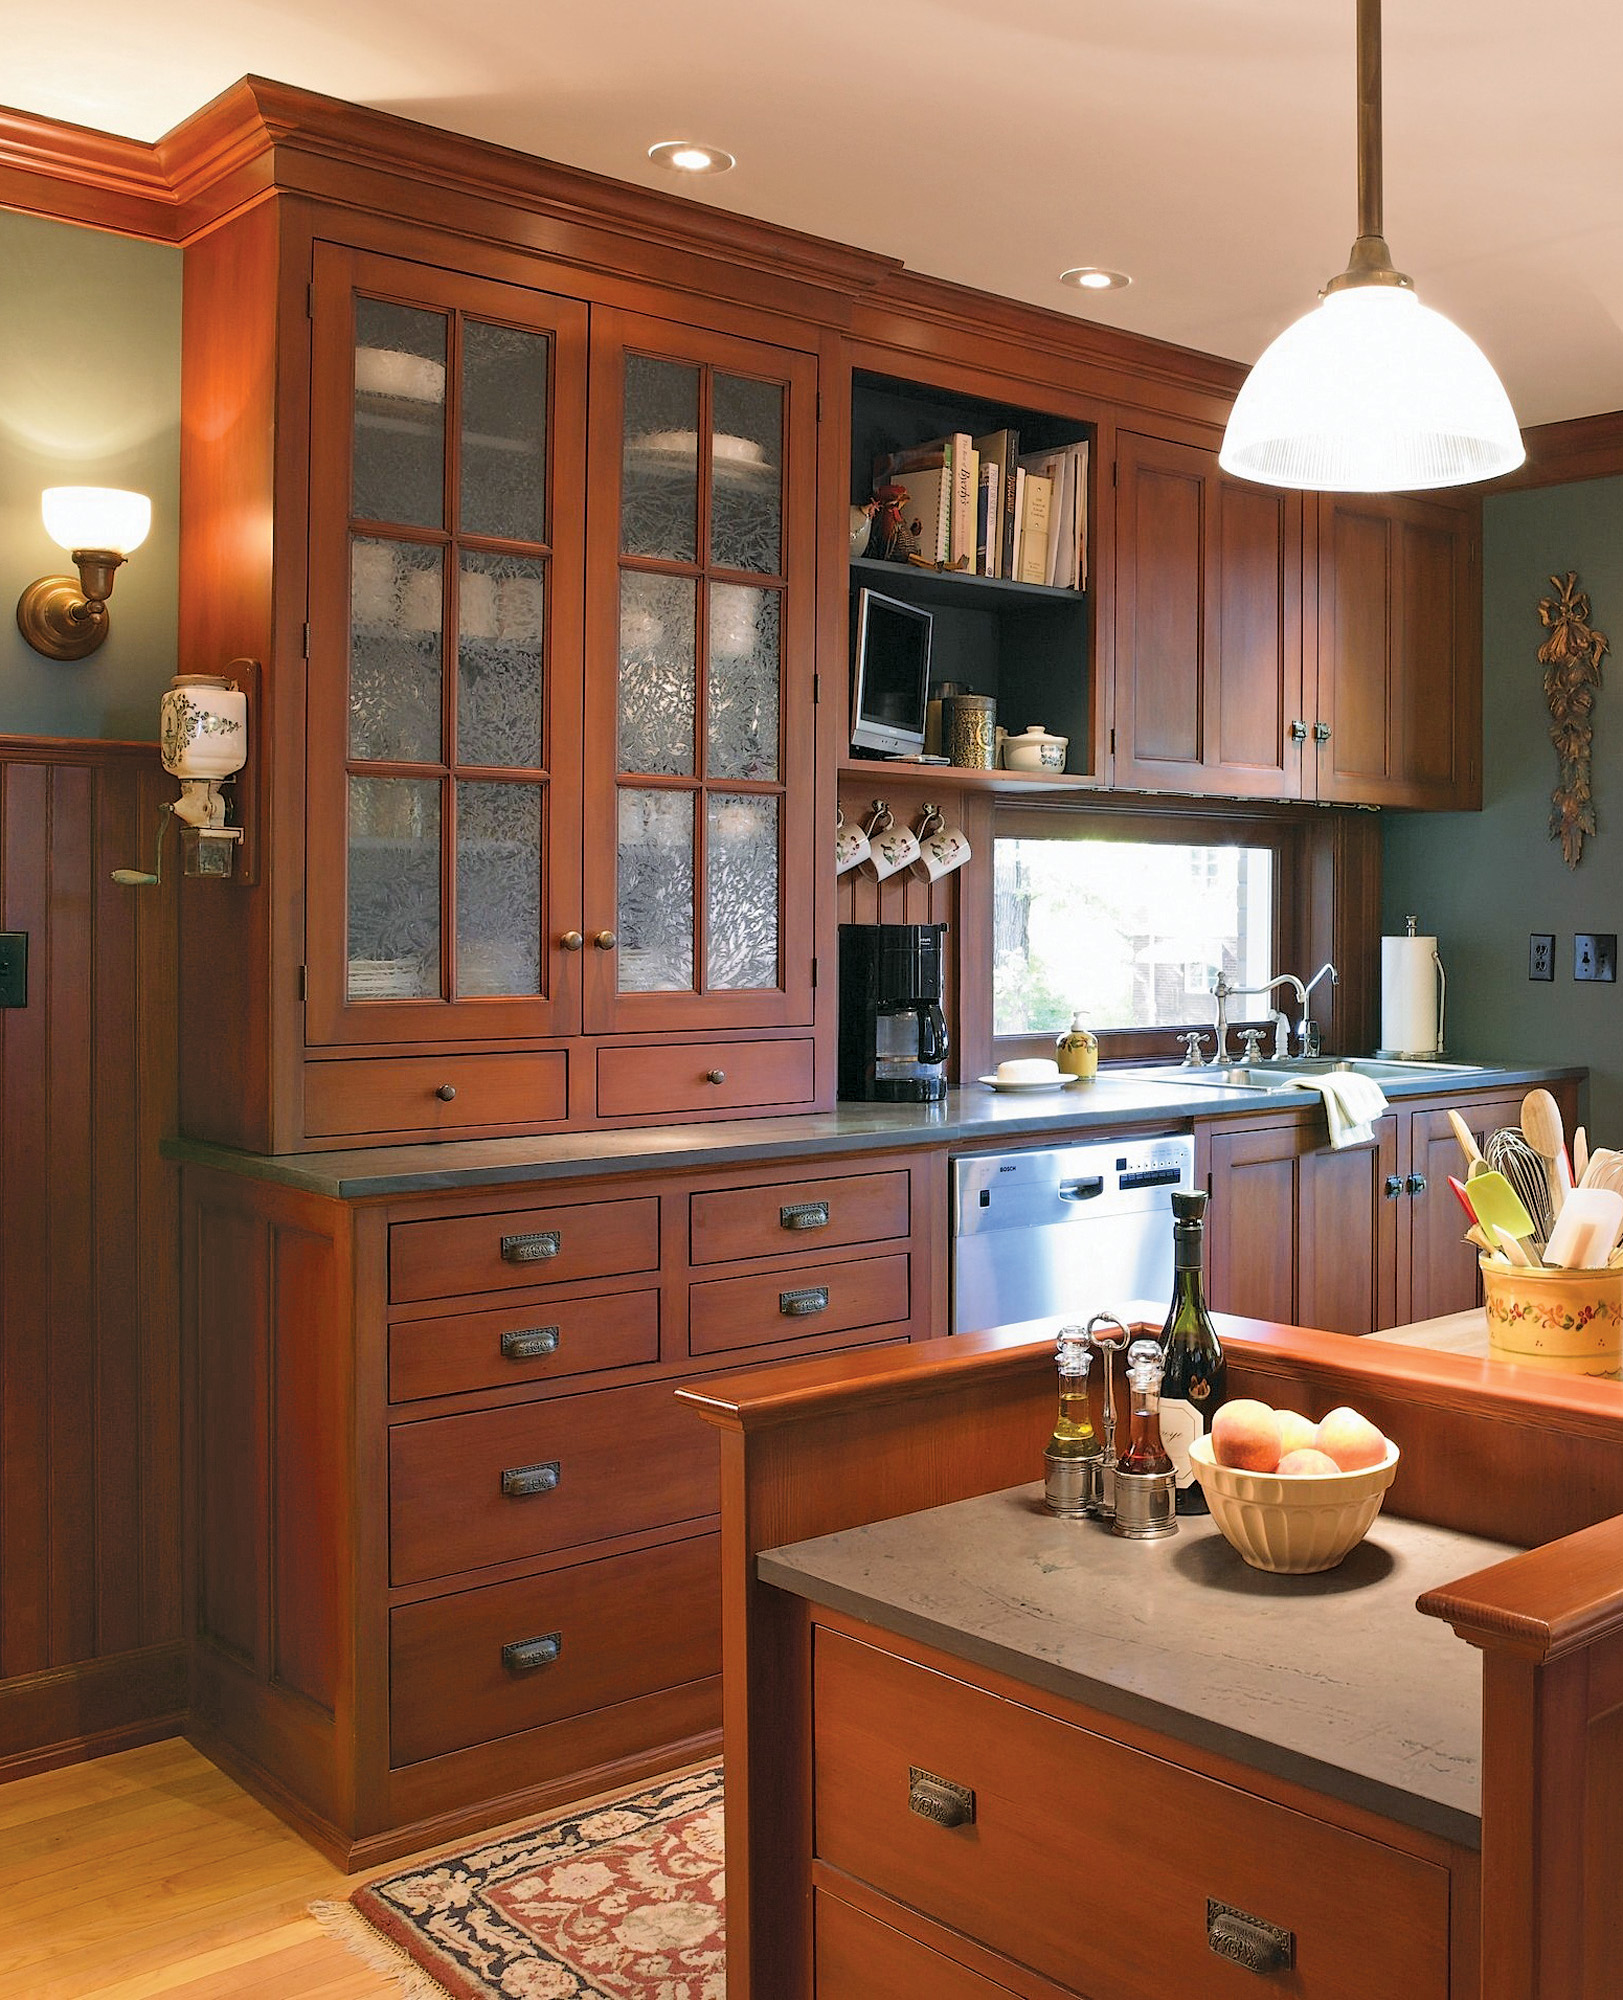 Design Kitchen Cabinet Online: Kitchen Cabinets For Period Houses